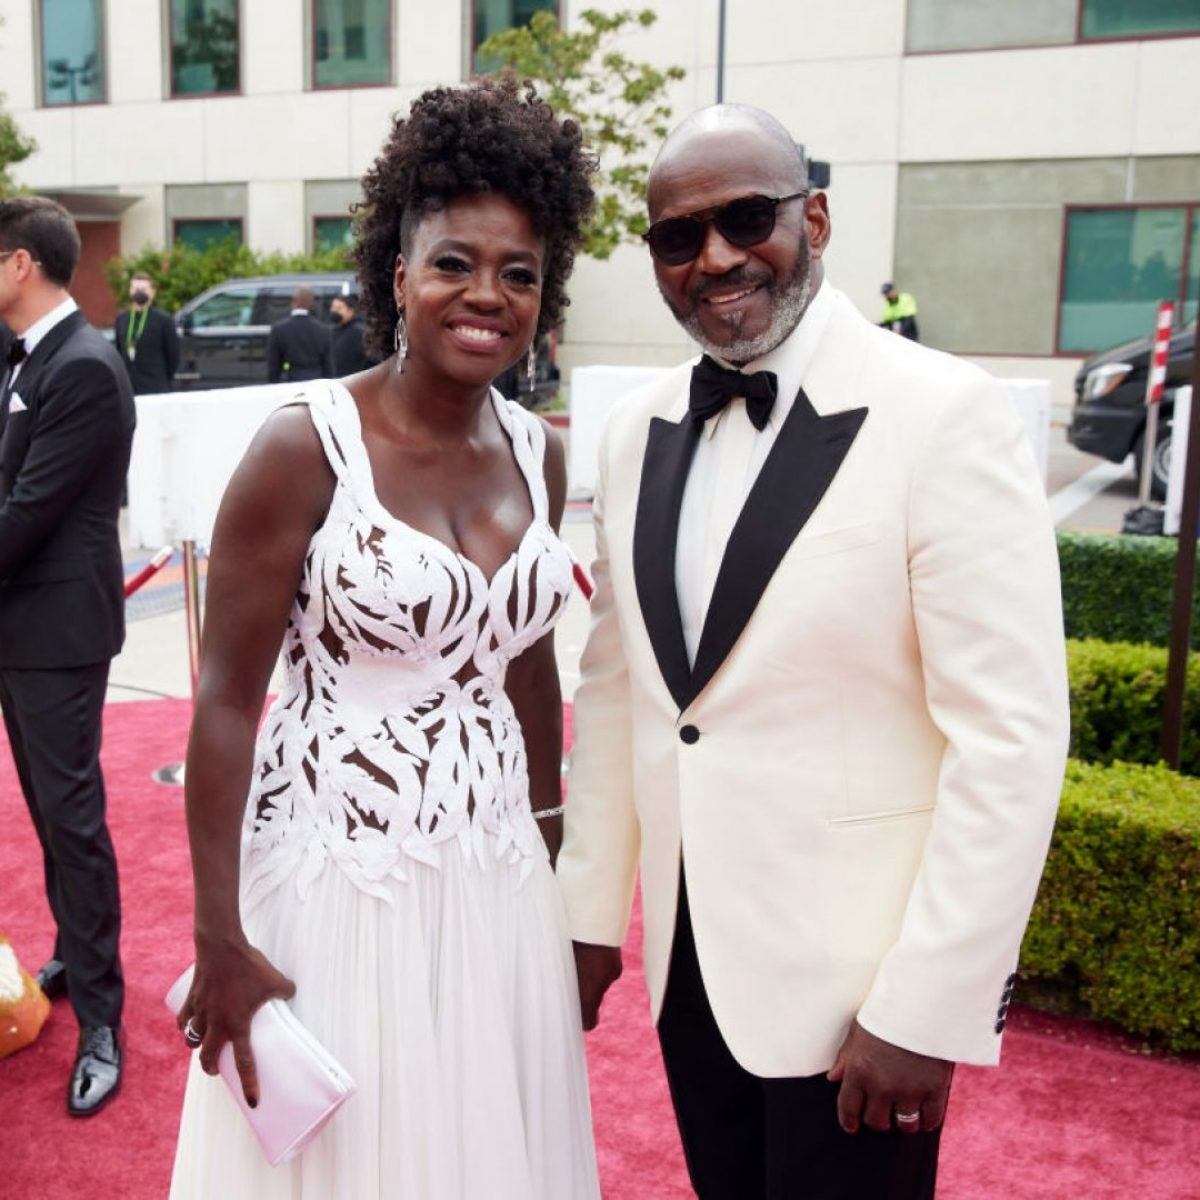 Black Celebrity Couples In Love And Looking Lovely At The 2021 Oscars